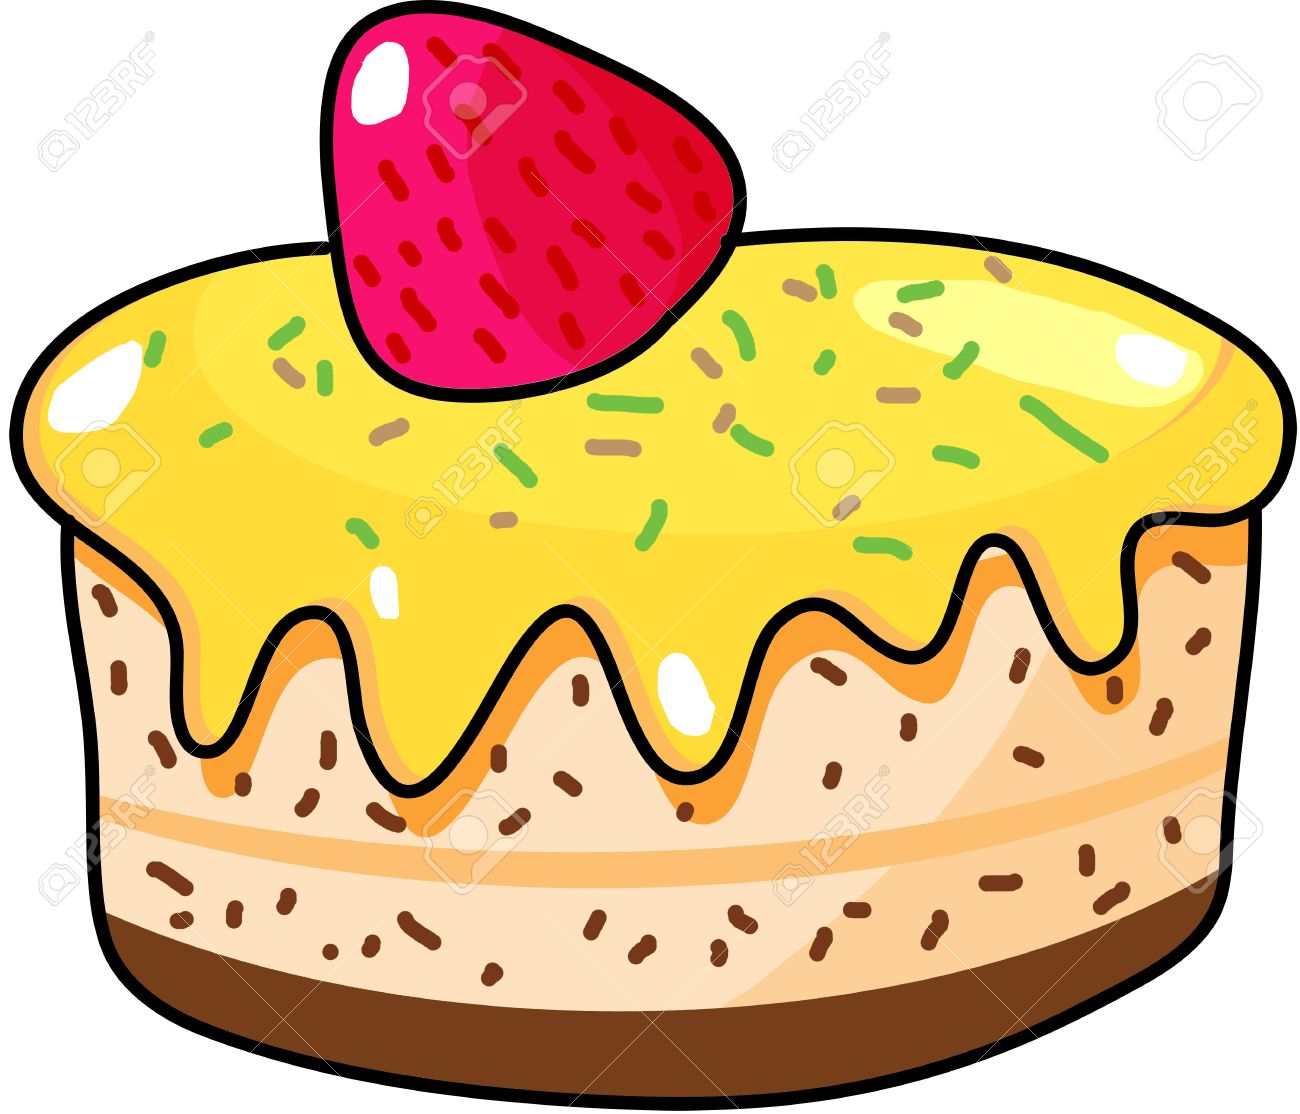 1300x1114 Cup Cake Hand Drawn Illustration Royalty Free Cliparts, Vectors